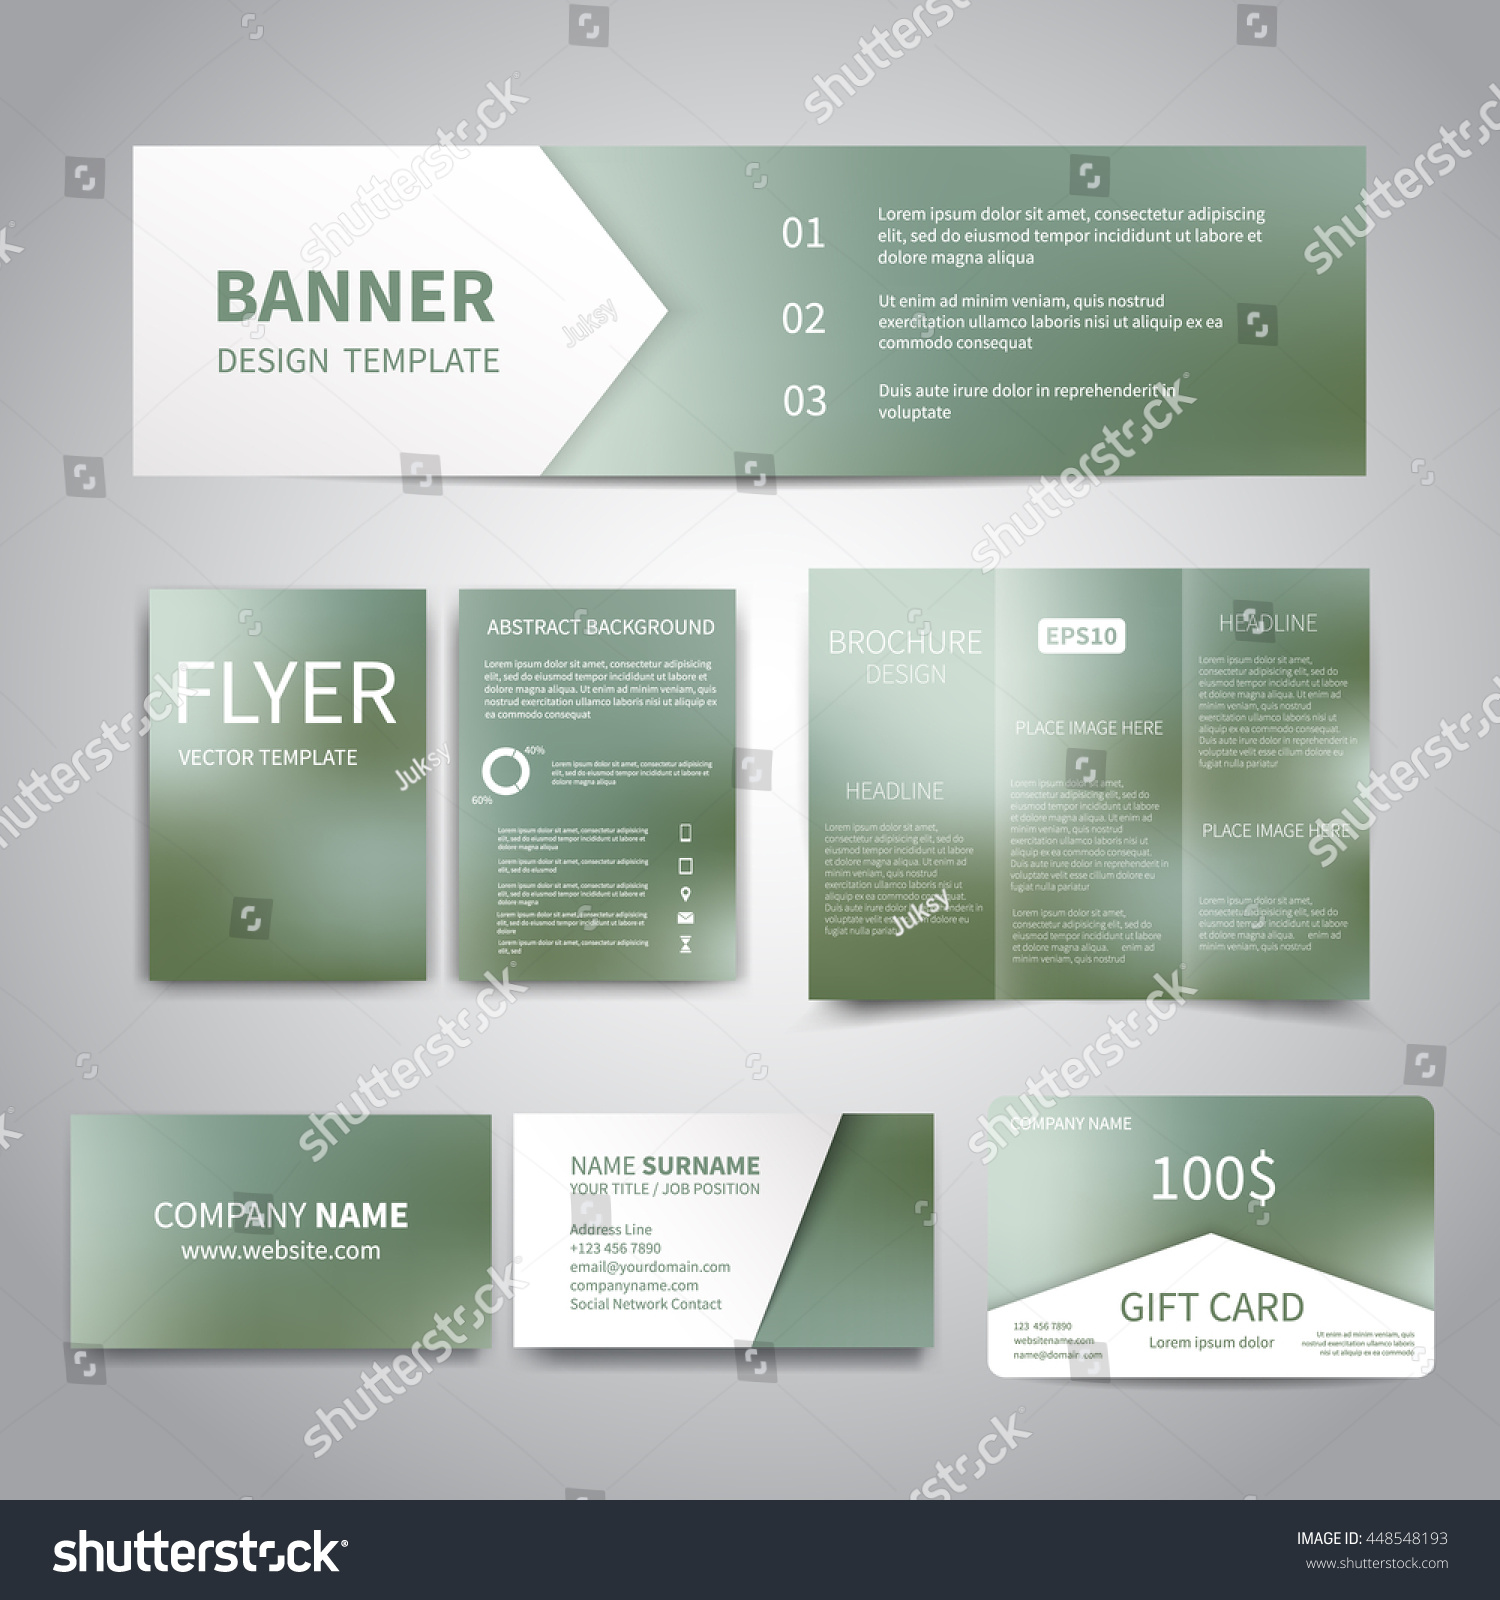 banner flyers brochure business cards gift card design banner flyers brochure business cards gift card design templates set green